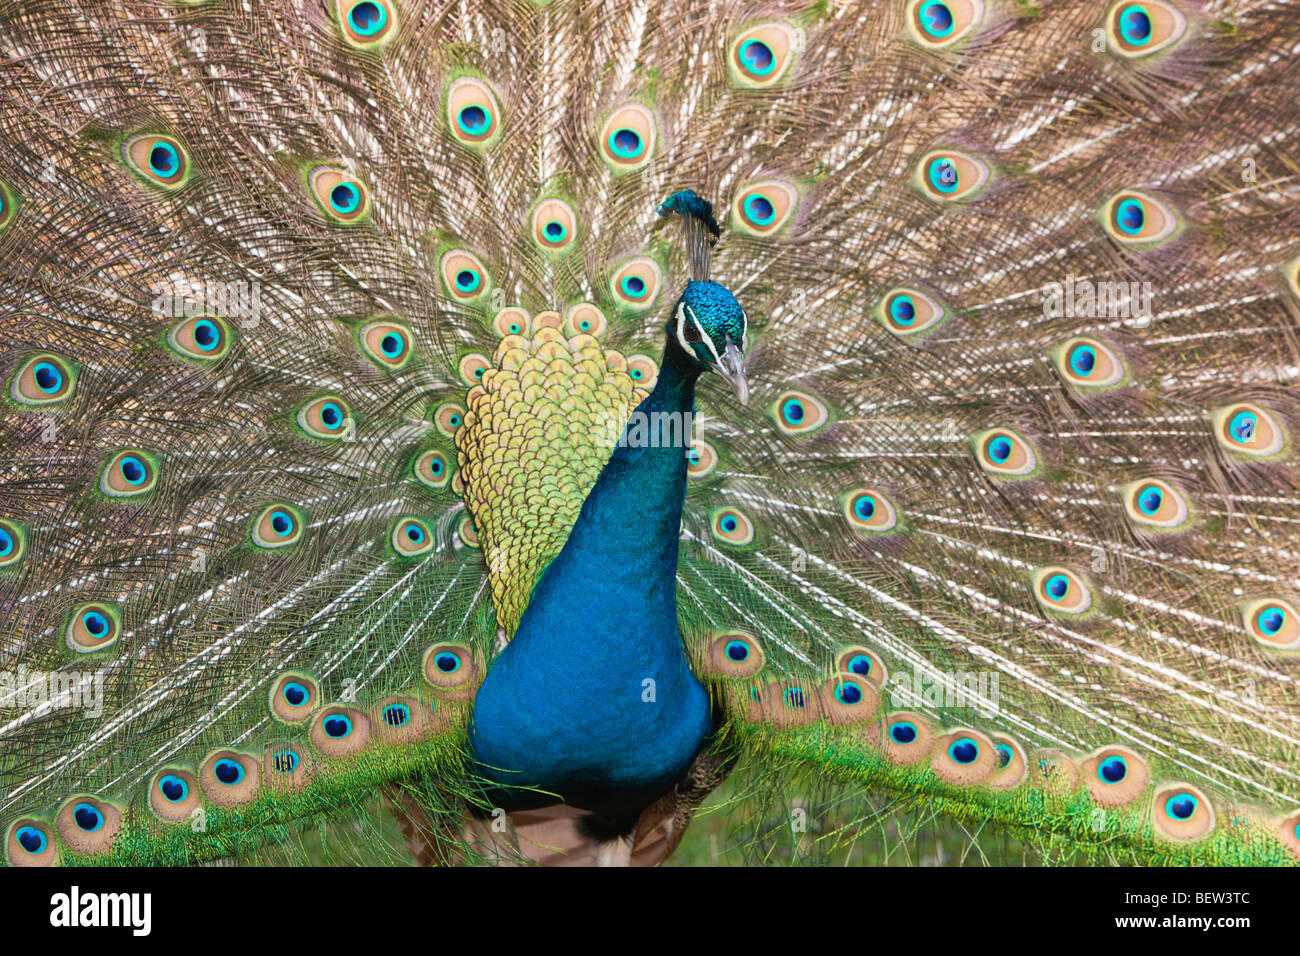 Blue Peafowl, Pavo christatus - Stock Image